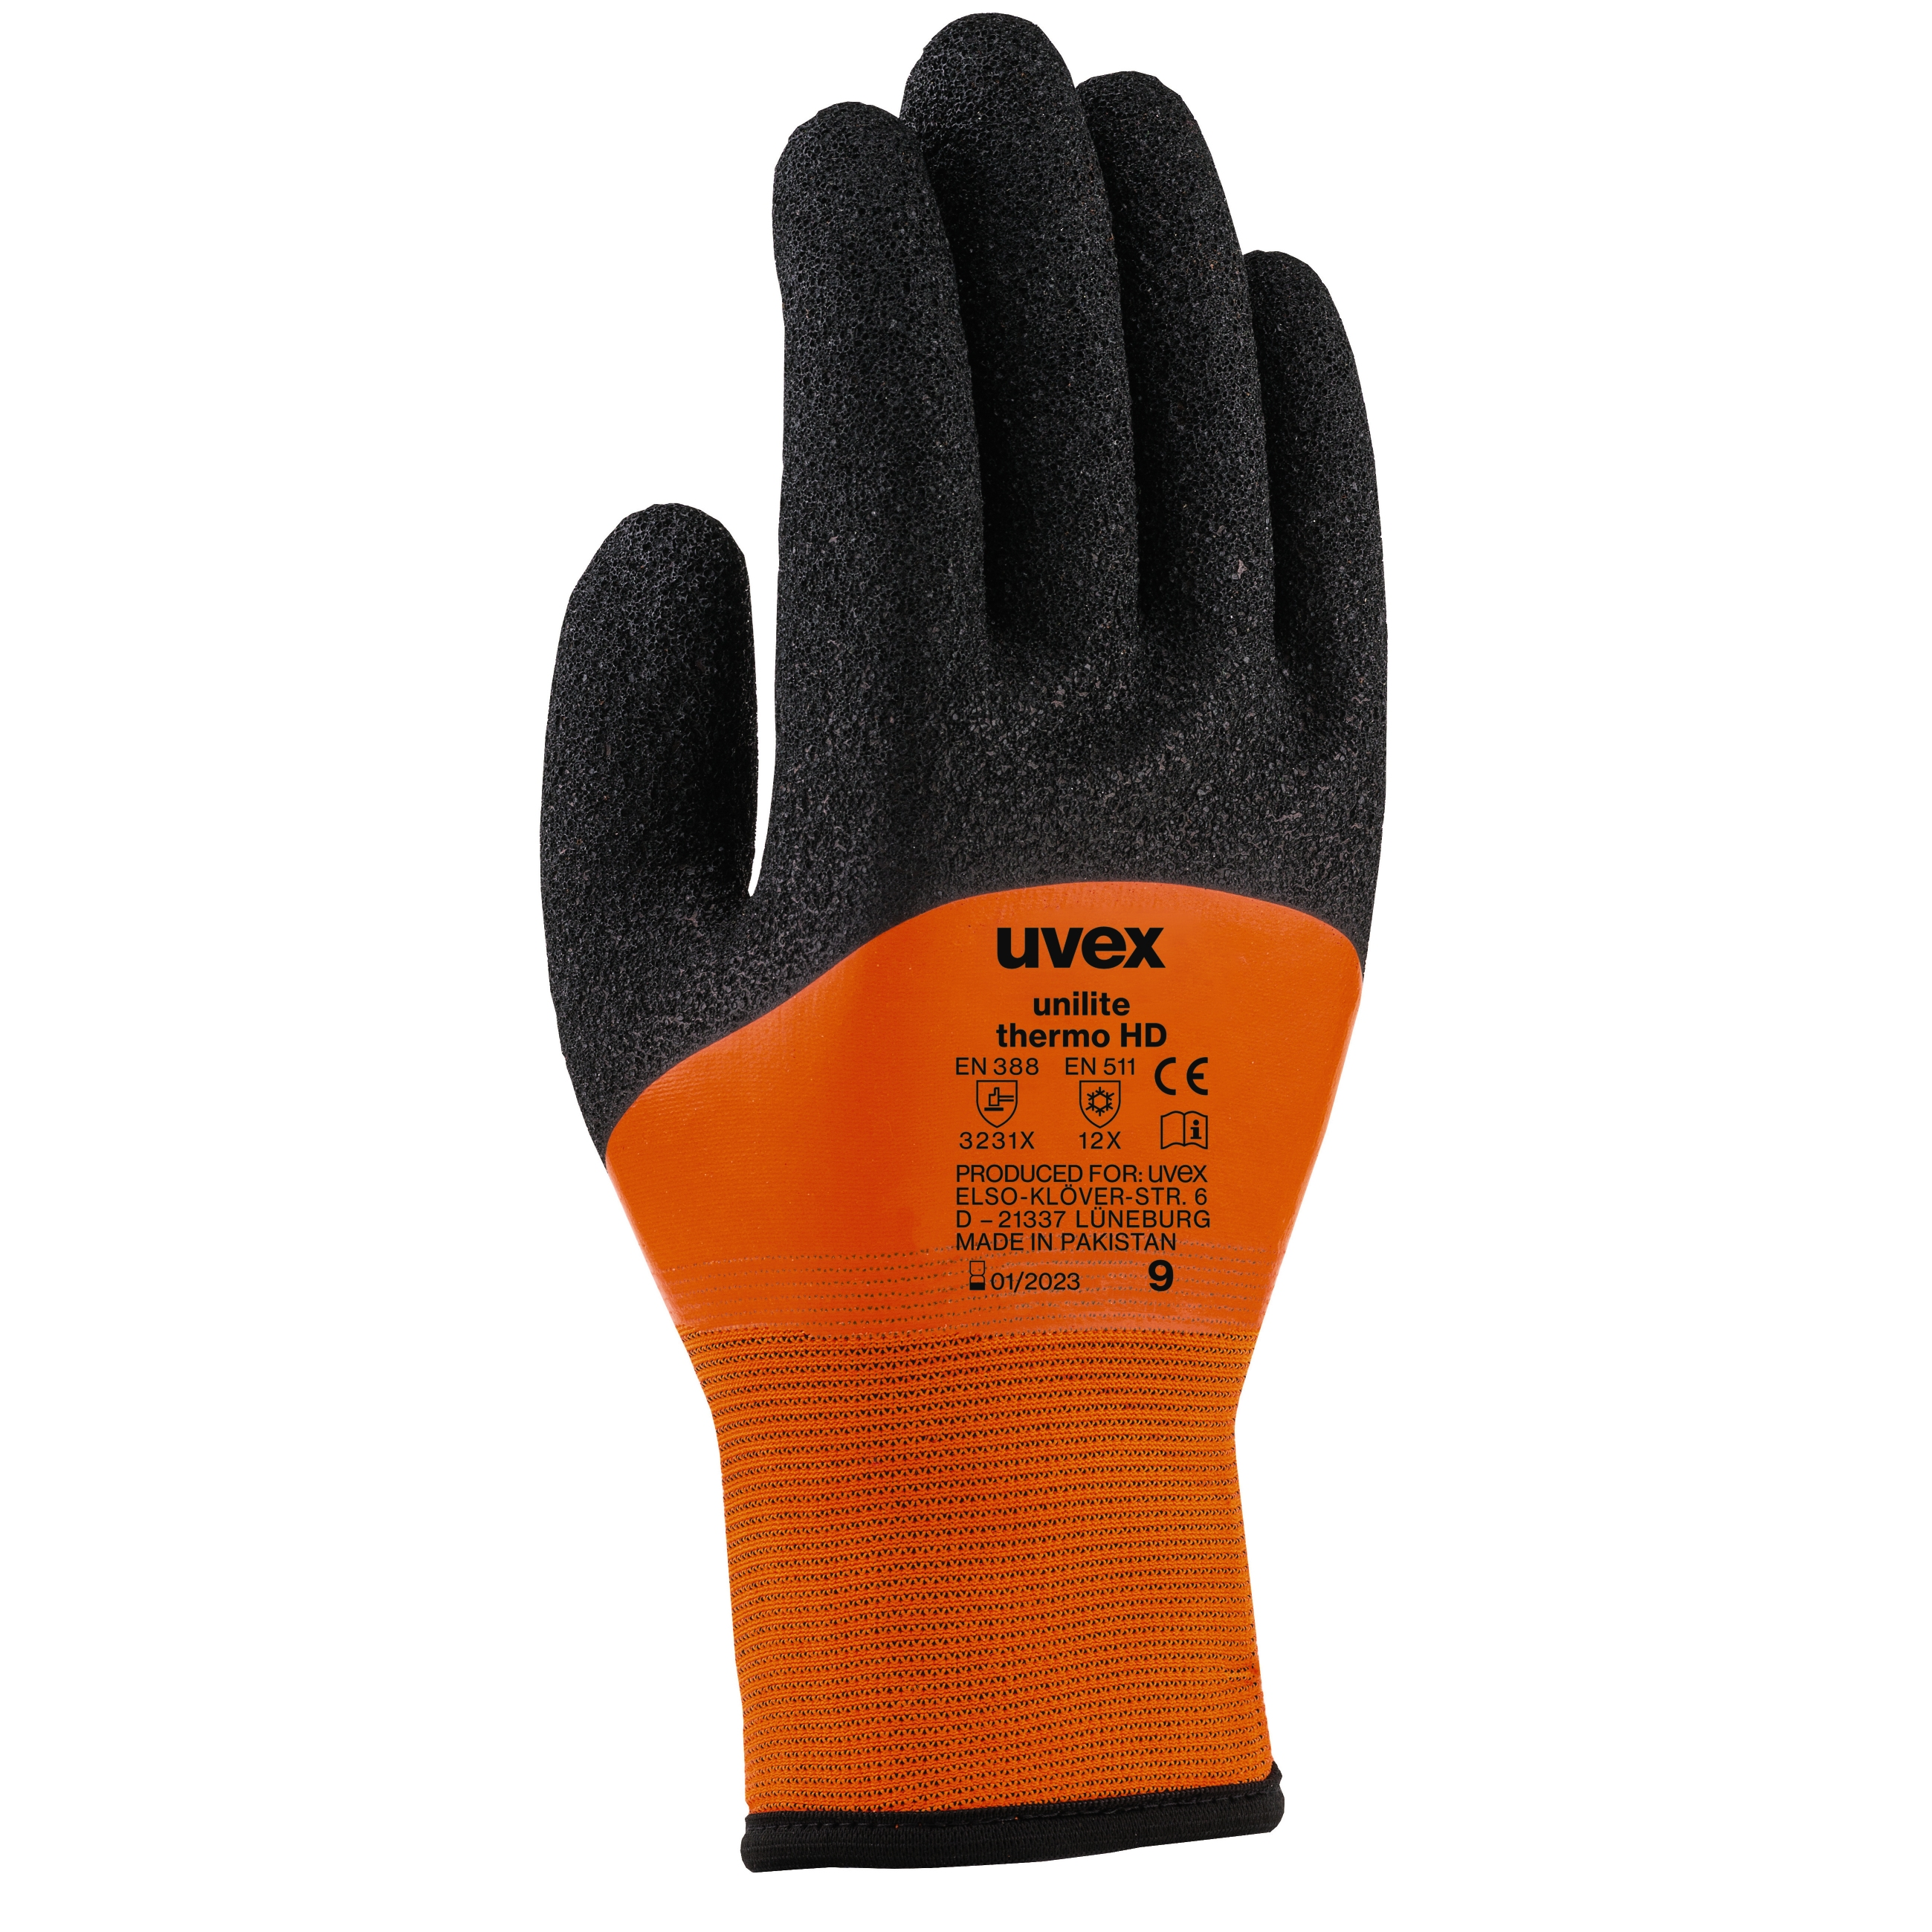 UVEX Unilite Work Wear Safety Cold Condition Thermo Glove Size 07